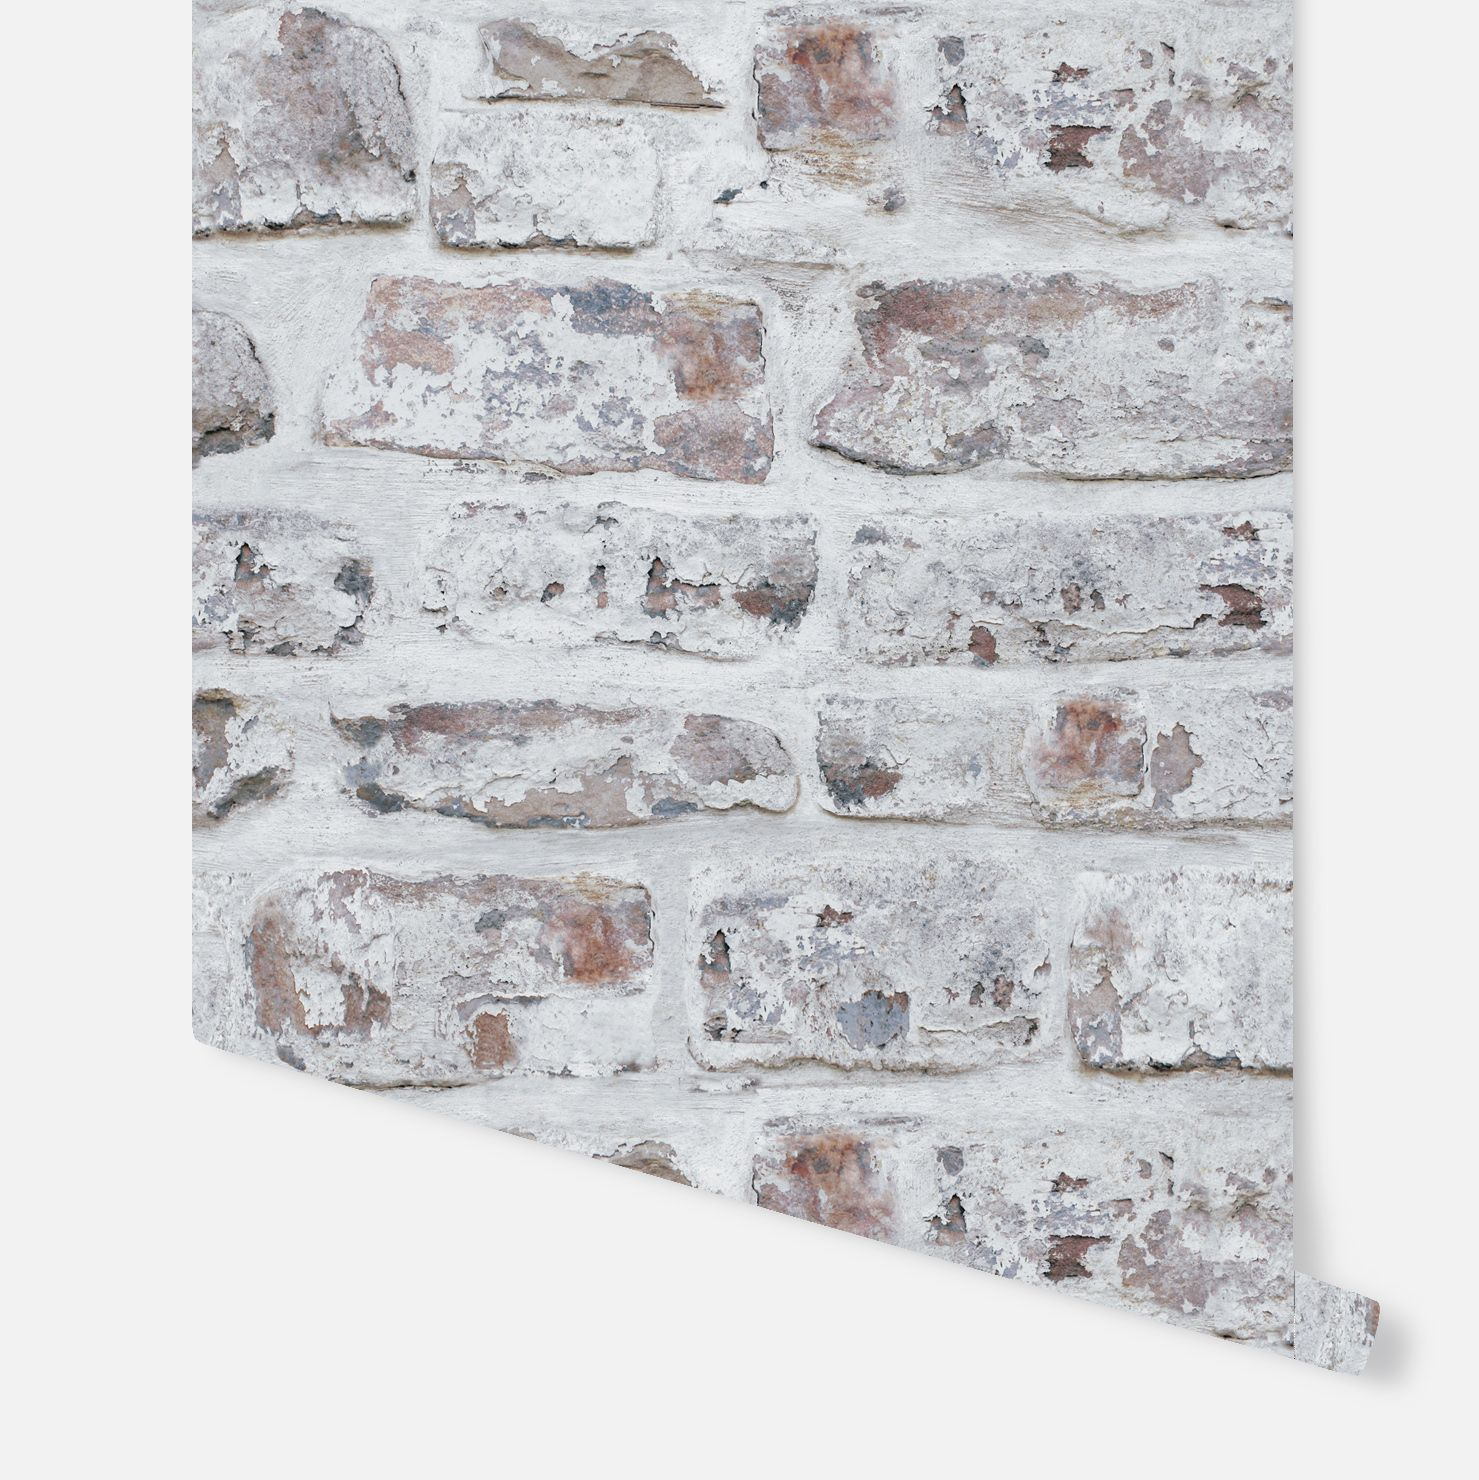 Peel And Stick Wallpaper From Arthouse Artistick White Washed Wall Non Woven Wallpaper In 2020 White Wash Walls Washing Walls White Wash